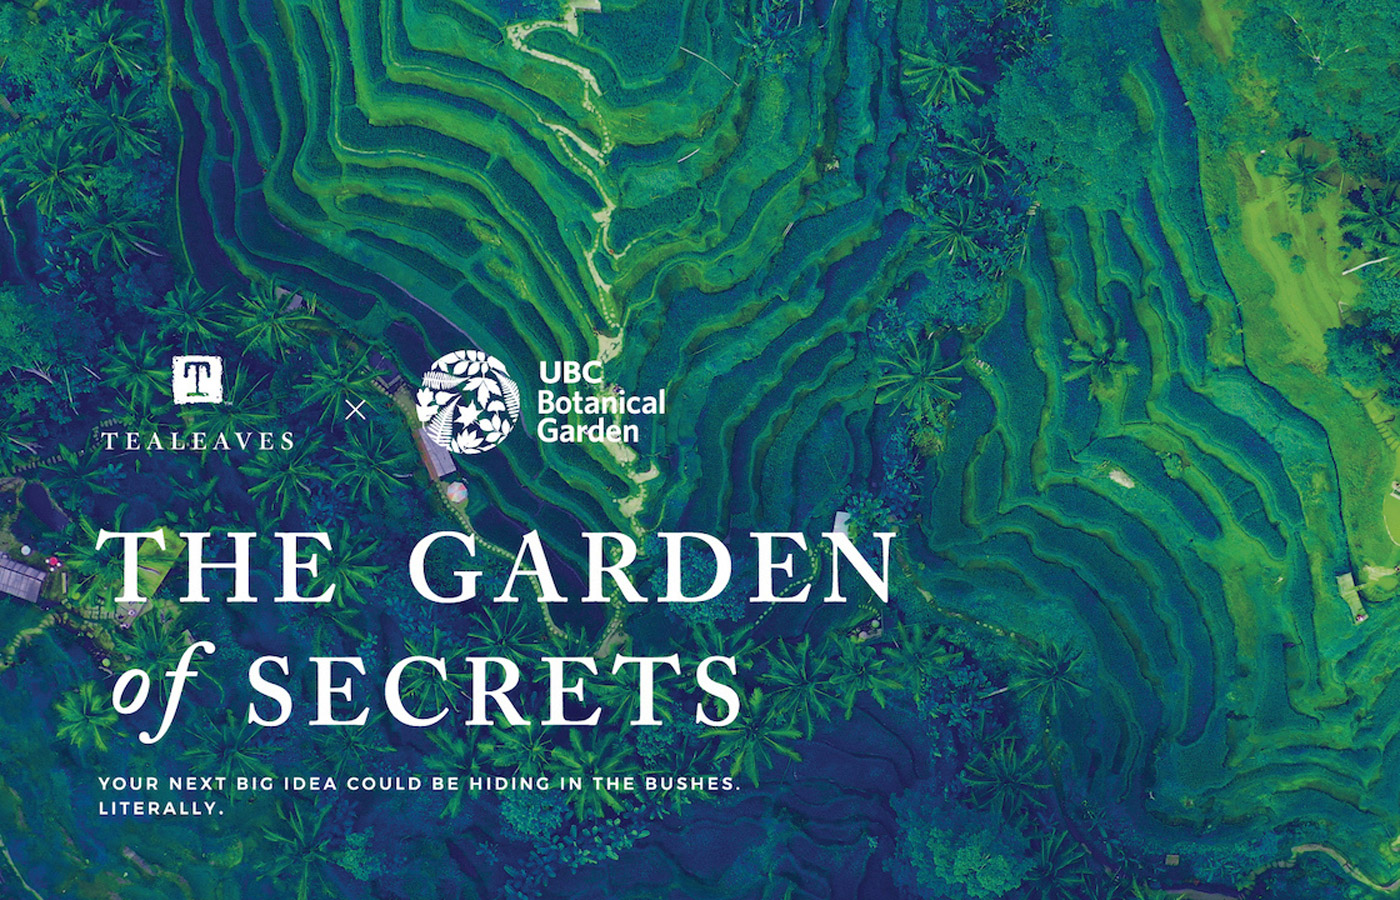 TEALEAVES' The Garden of Secrets Project Wins Honorable Mention in Fast Company 2020 World Changing Ideas Awards